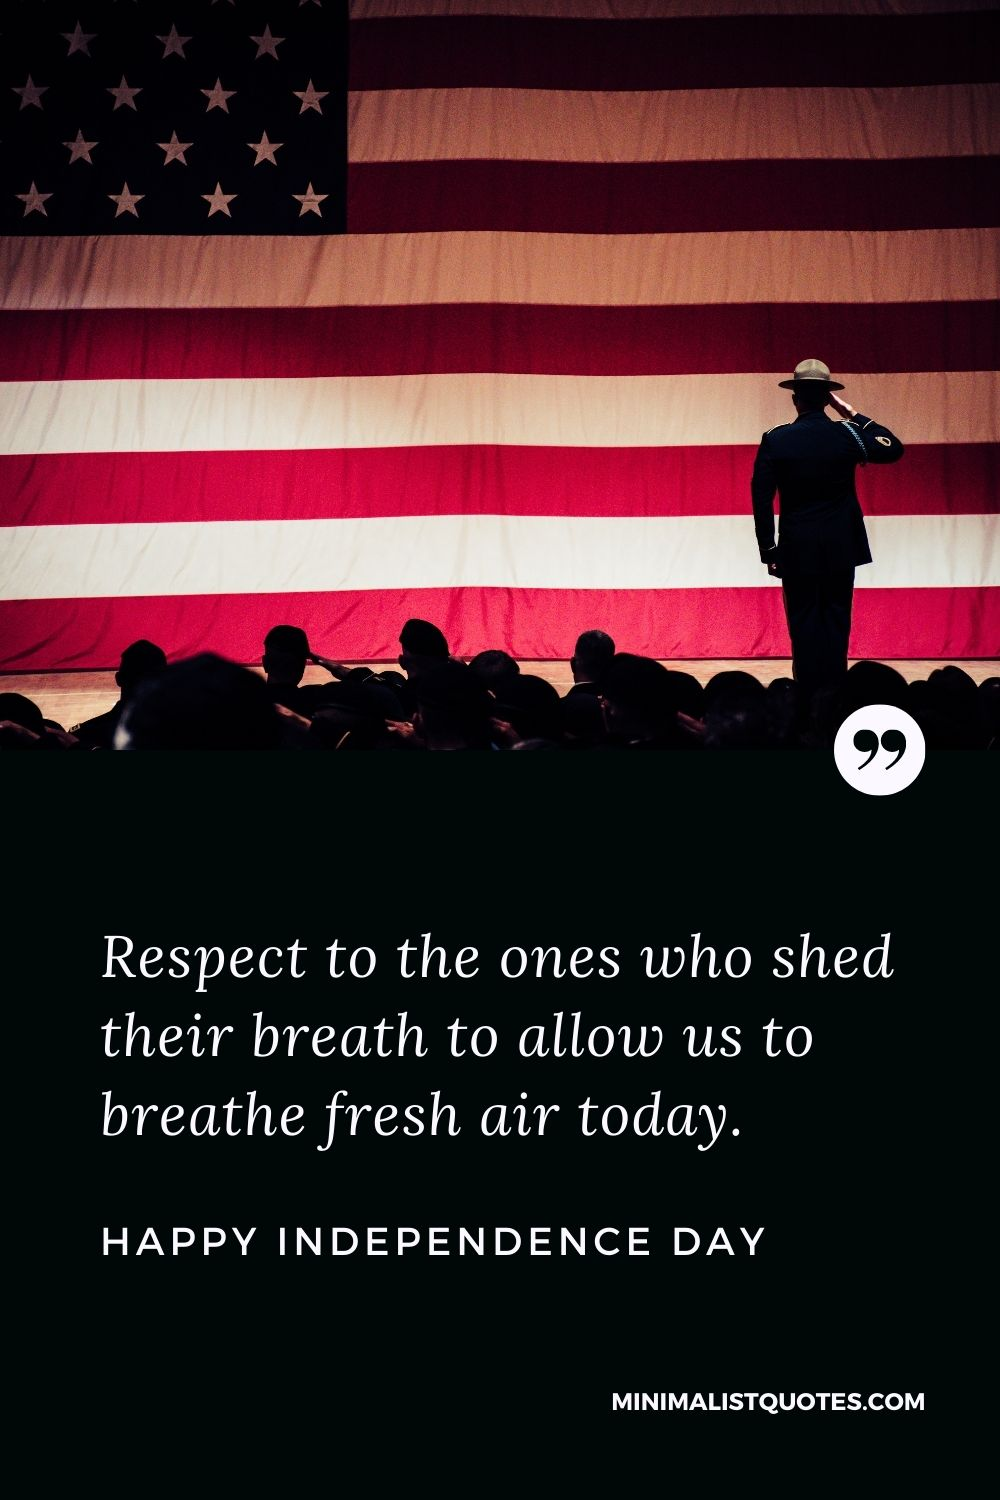 Independence Day wishes quotes with images: Respect to the ones who shed their breath to allow us to breathe fresh air today. Happy Independence Day!